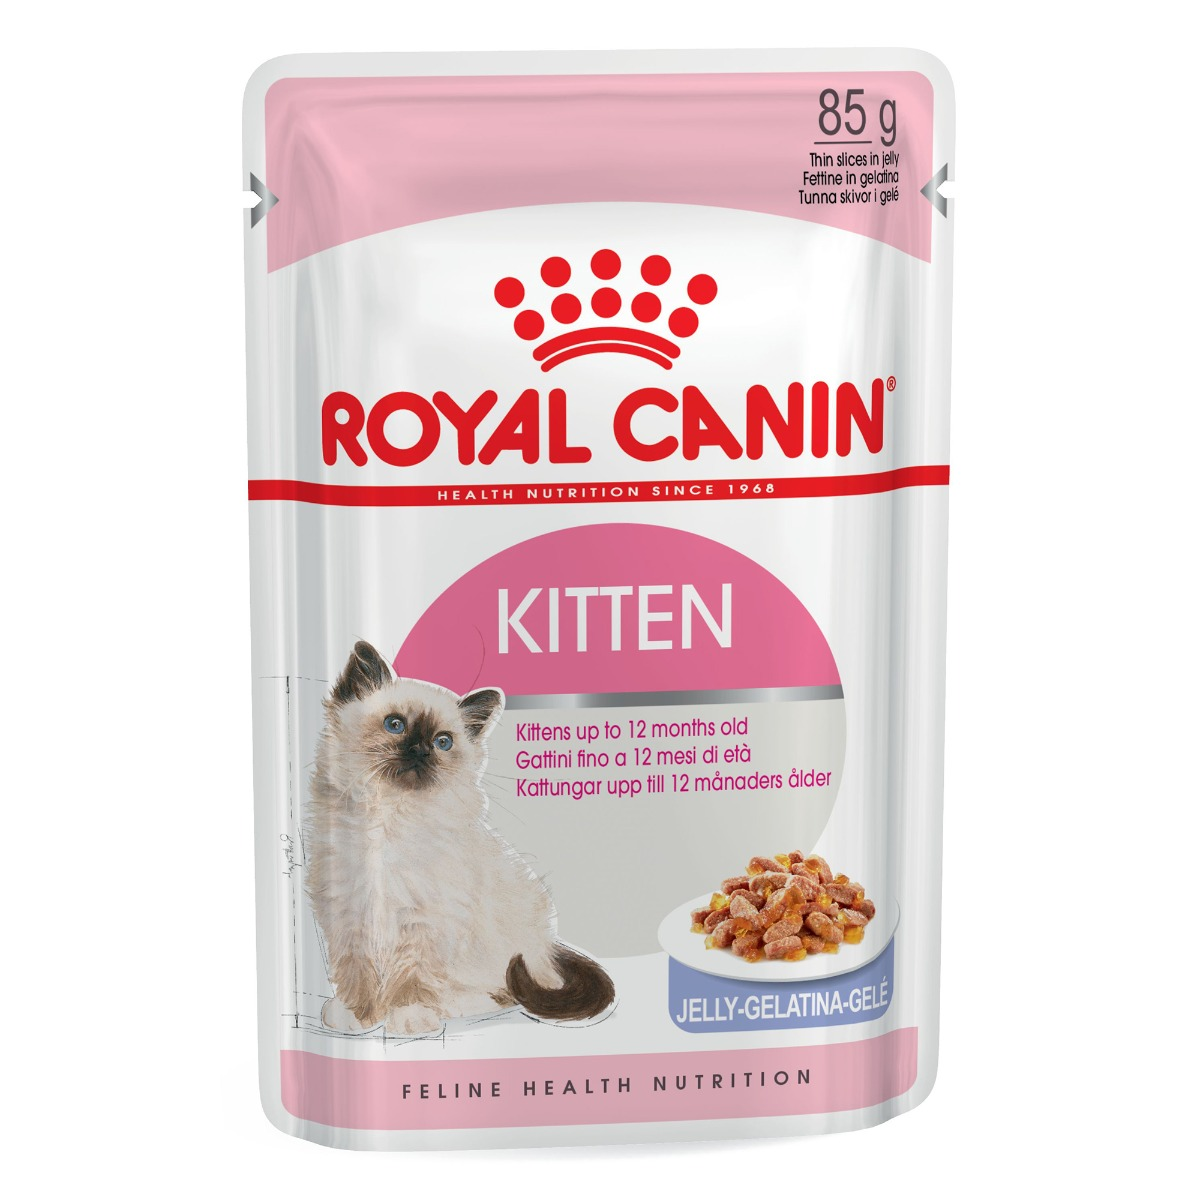 Royal Canin Feline Health Nutrition Kitten (in Jelly) Wet Pouches 12x85g on Animed Direct